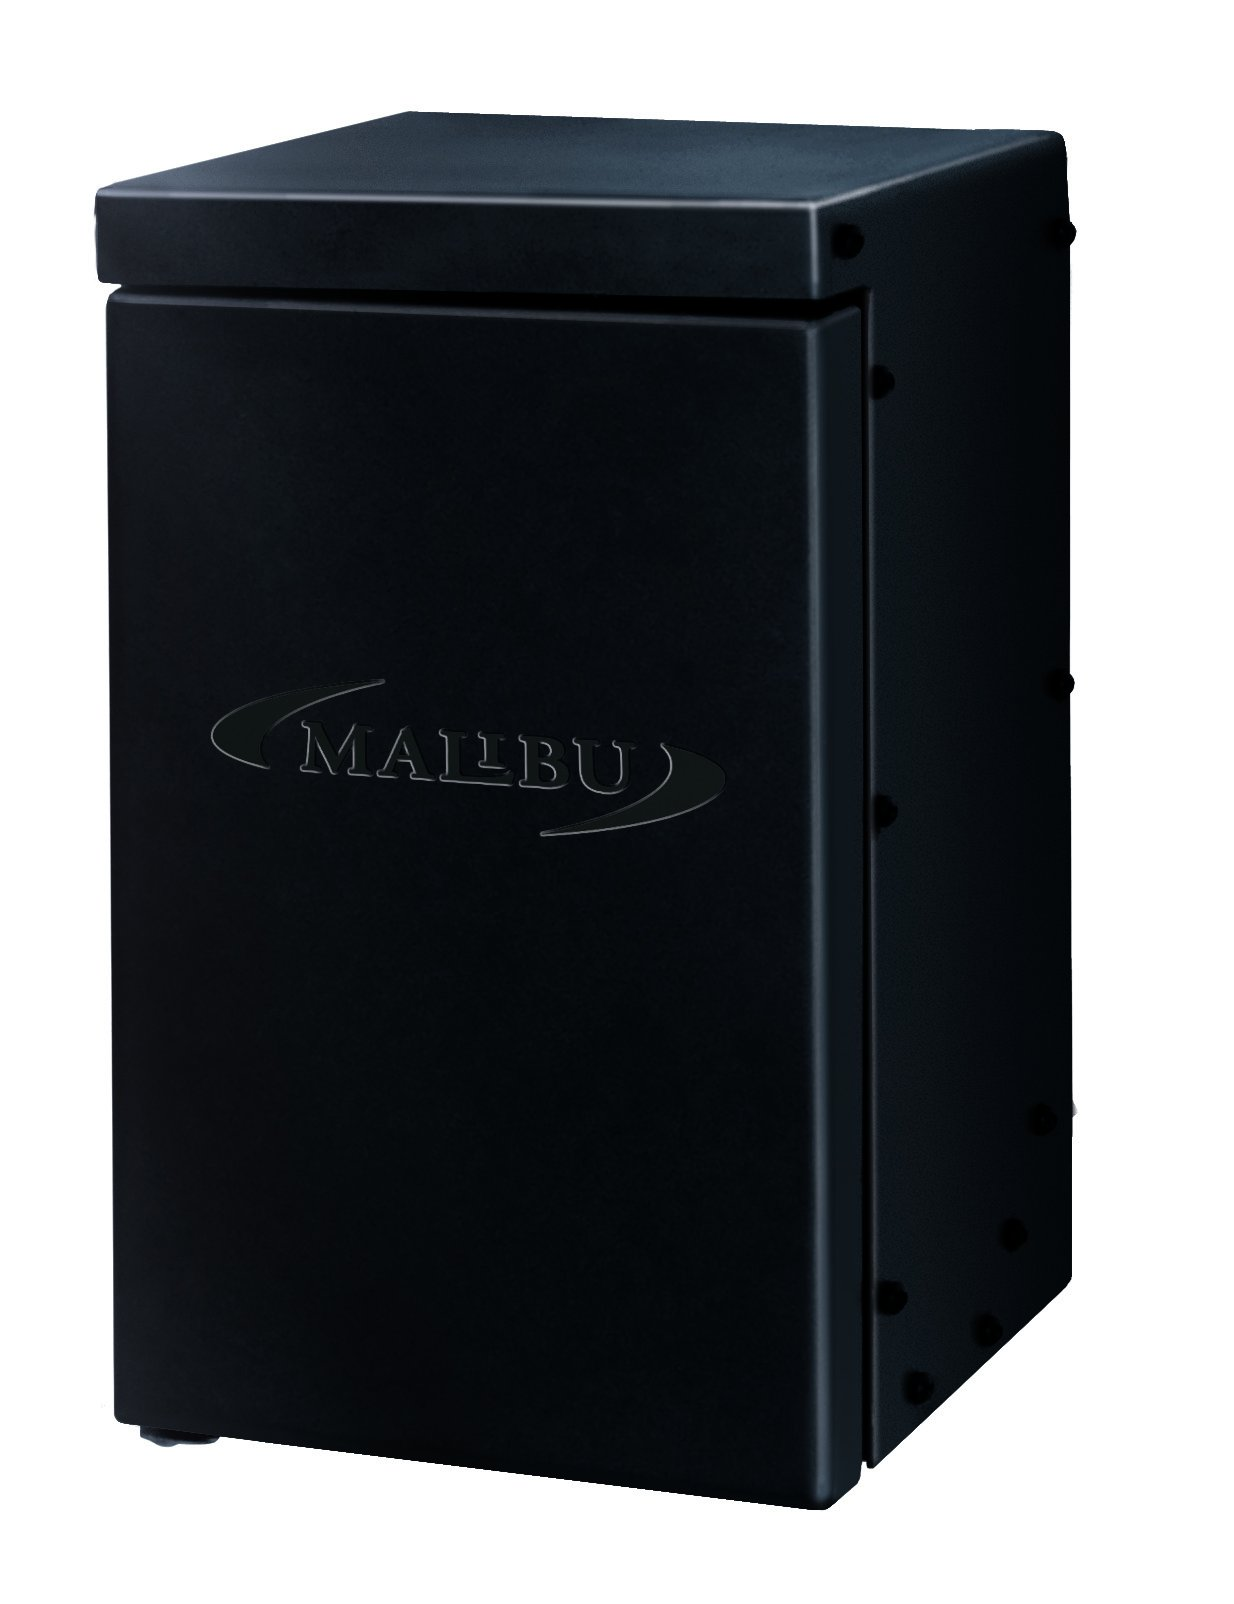 Malibu 300 Watt Power Pack with Sensor and Weather Shield for Low Voltage Landscape Lighting Spotlight Outdoor Transformer 120V Input 12V Output 8100-0300-01 by Malibu C